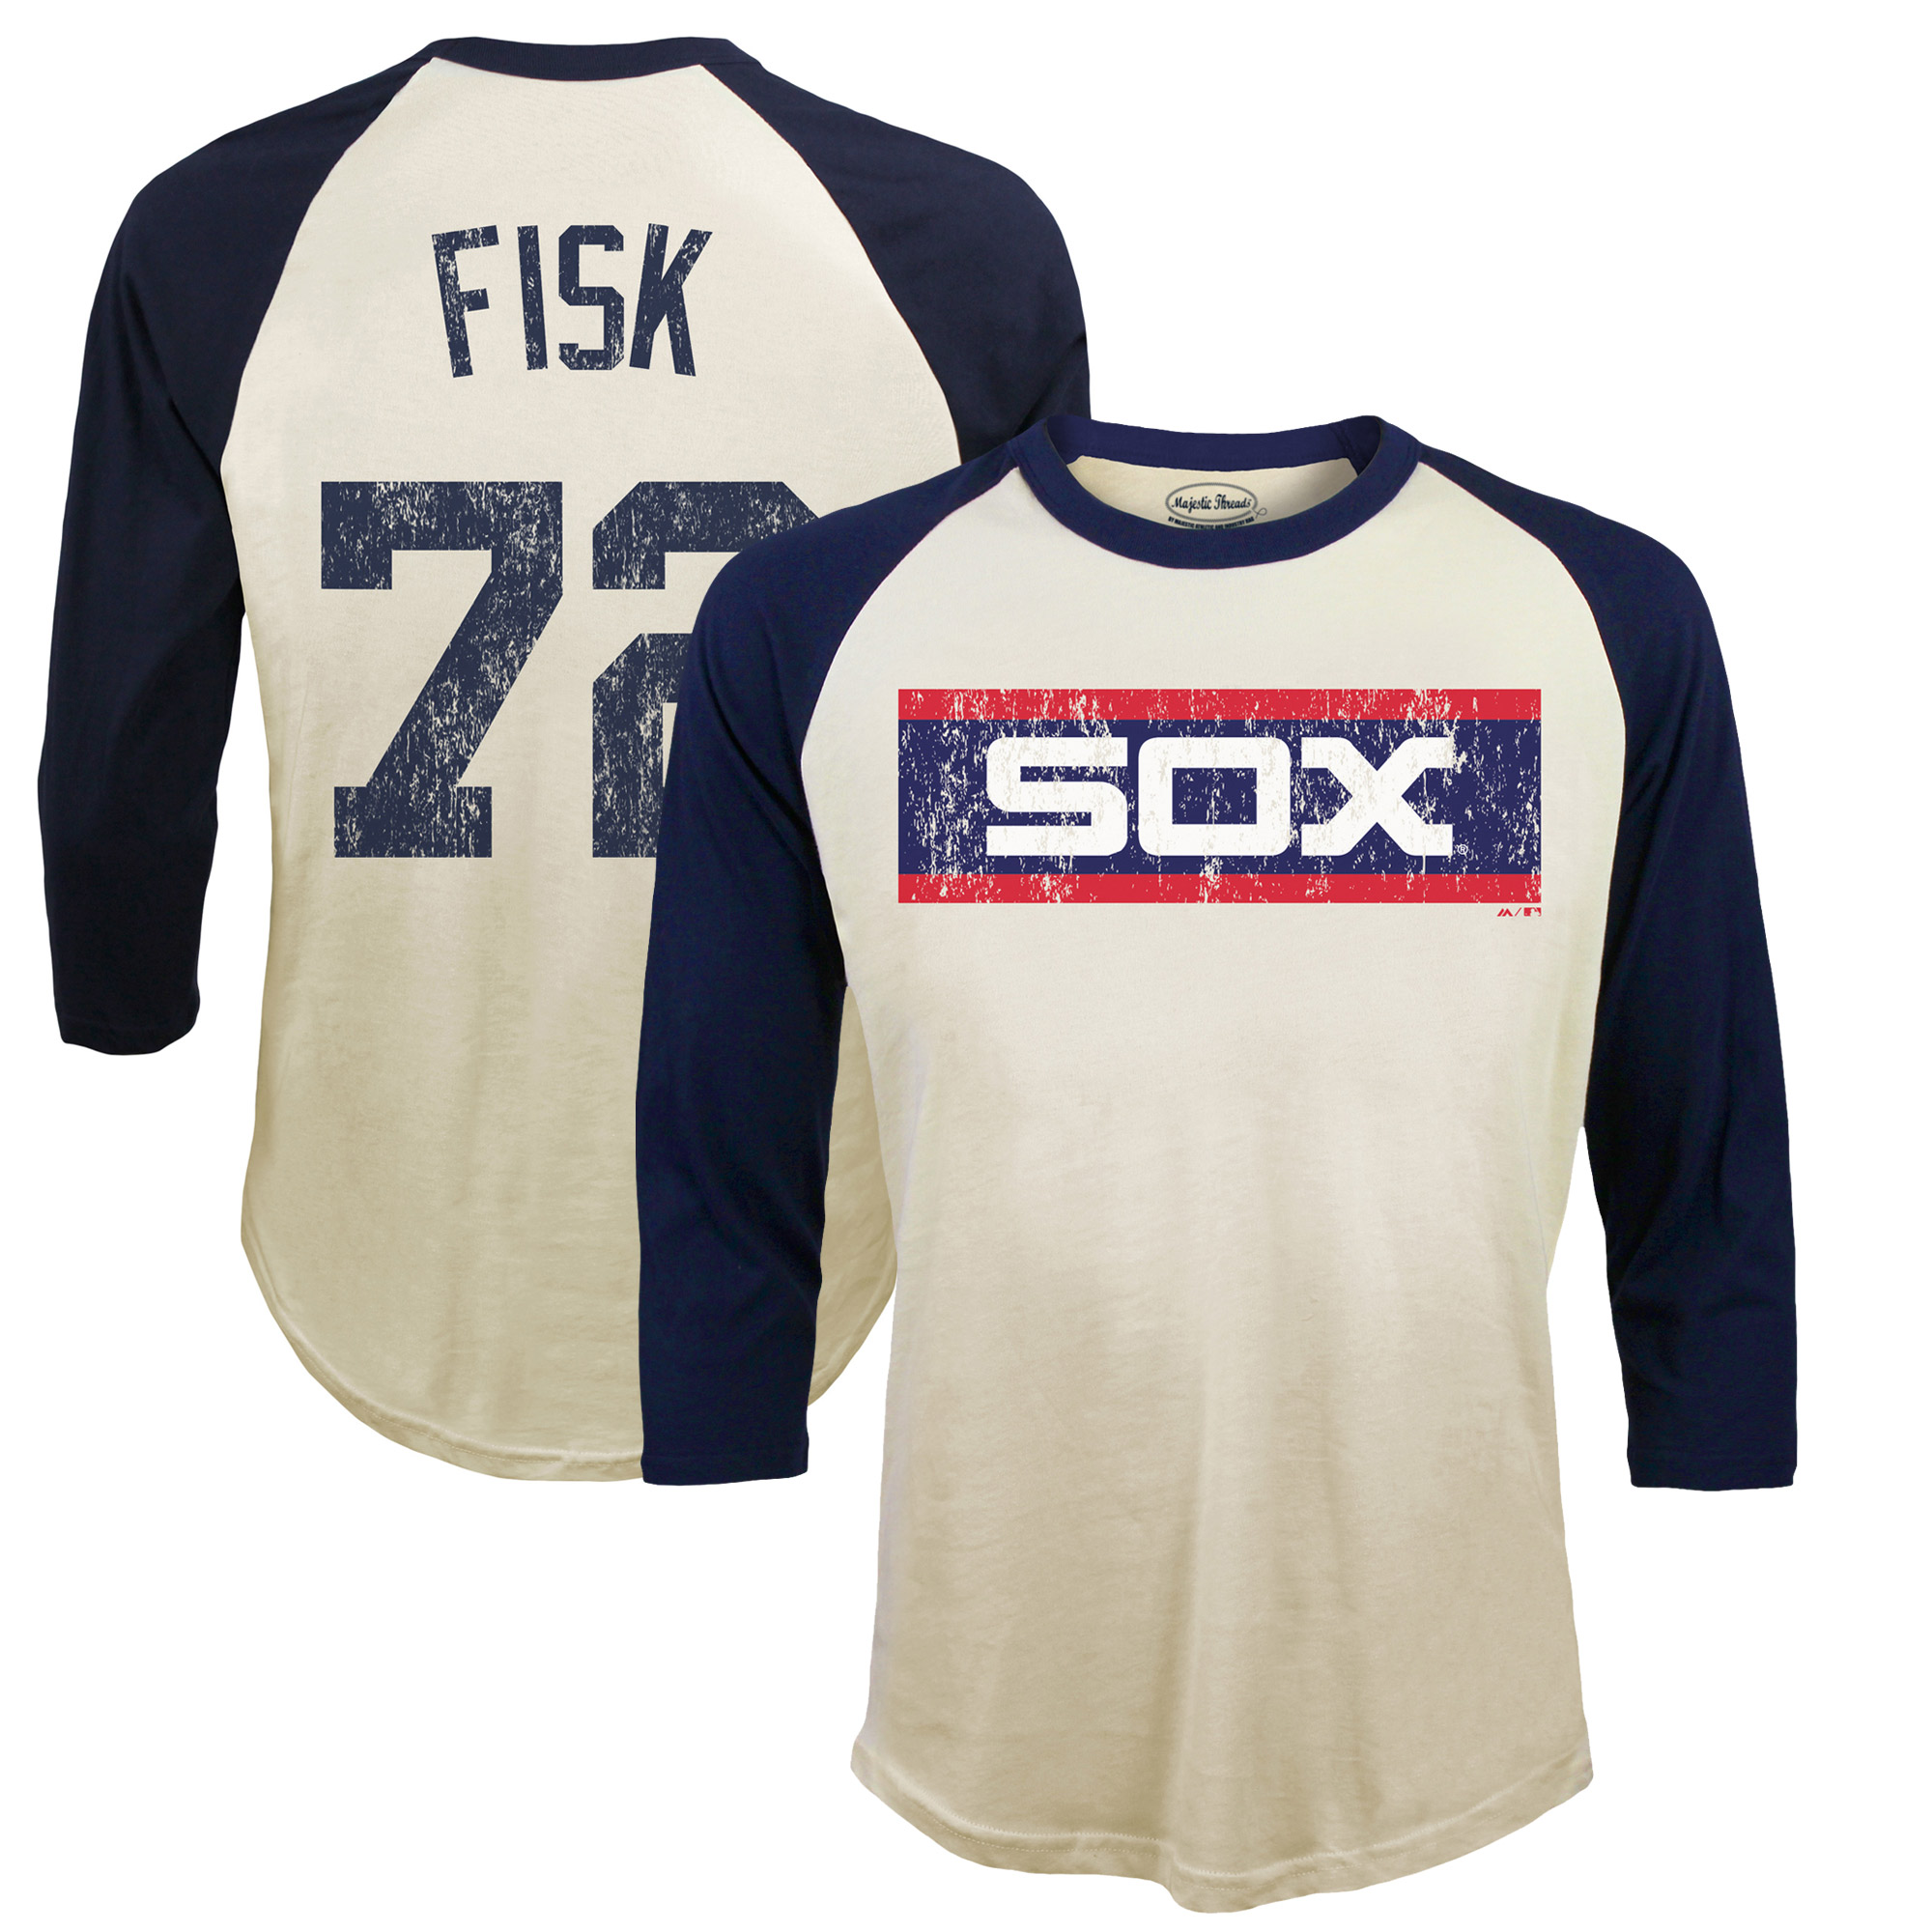 Carlton Fisk Chicago White Sox Majestic Threads Softhand Cotton Cooperstown 3/4-Sleeve Raglan T-Shirt - Cream